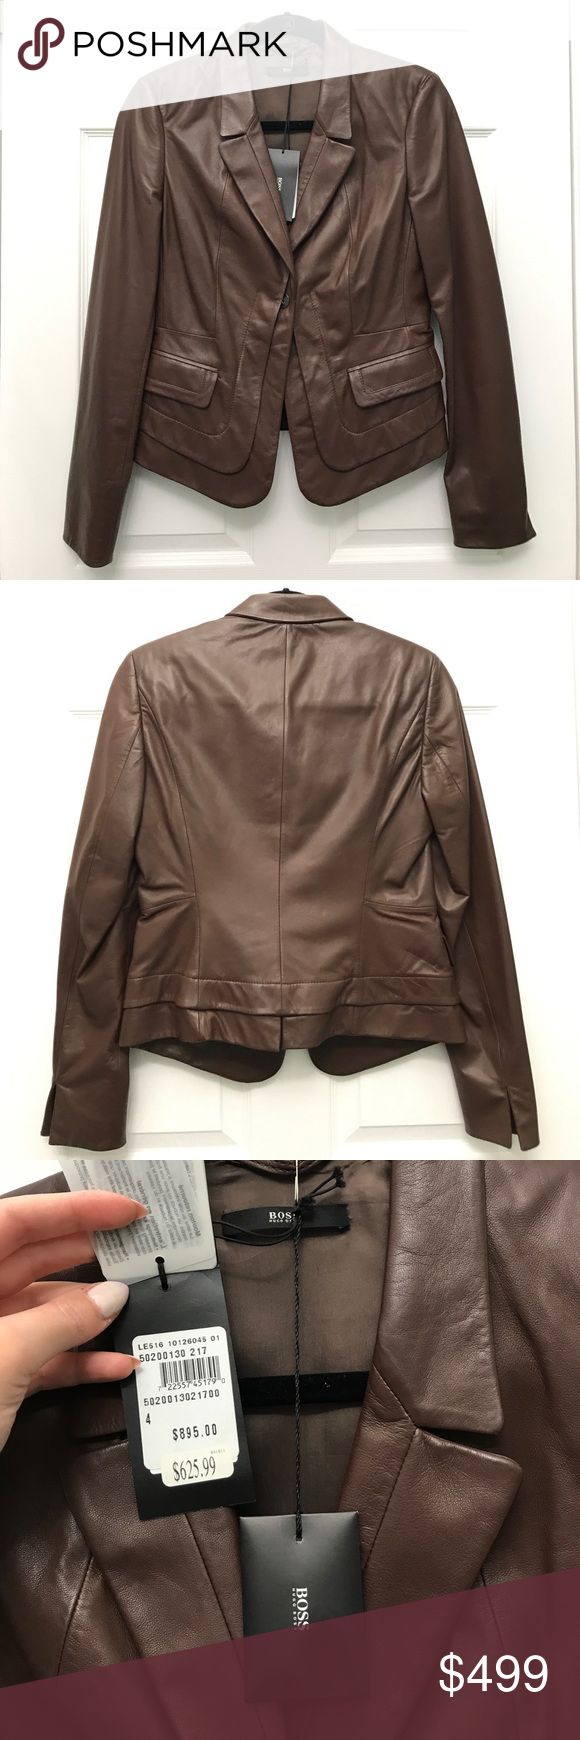 Boss Hugo Boss Brown Lambskin Leather Jacket Gorgeous, impossibly soft brown lambskin leather jacket by Boss Hugo Boss. Brand new with tags, never worn. Fully lined. This is a lightweight Spring/Summer leather piece. Hugo Boss Jackets & Coats